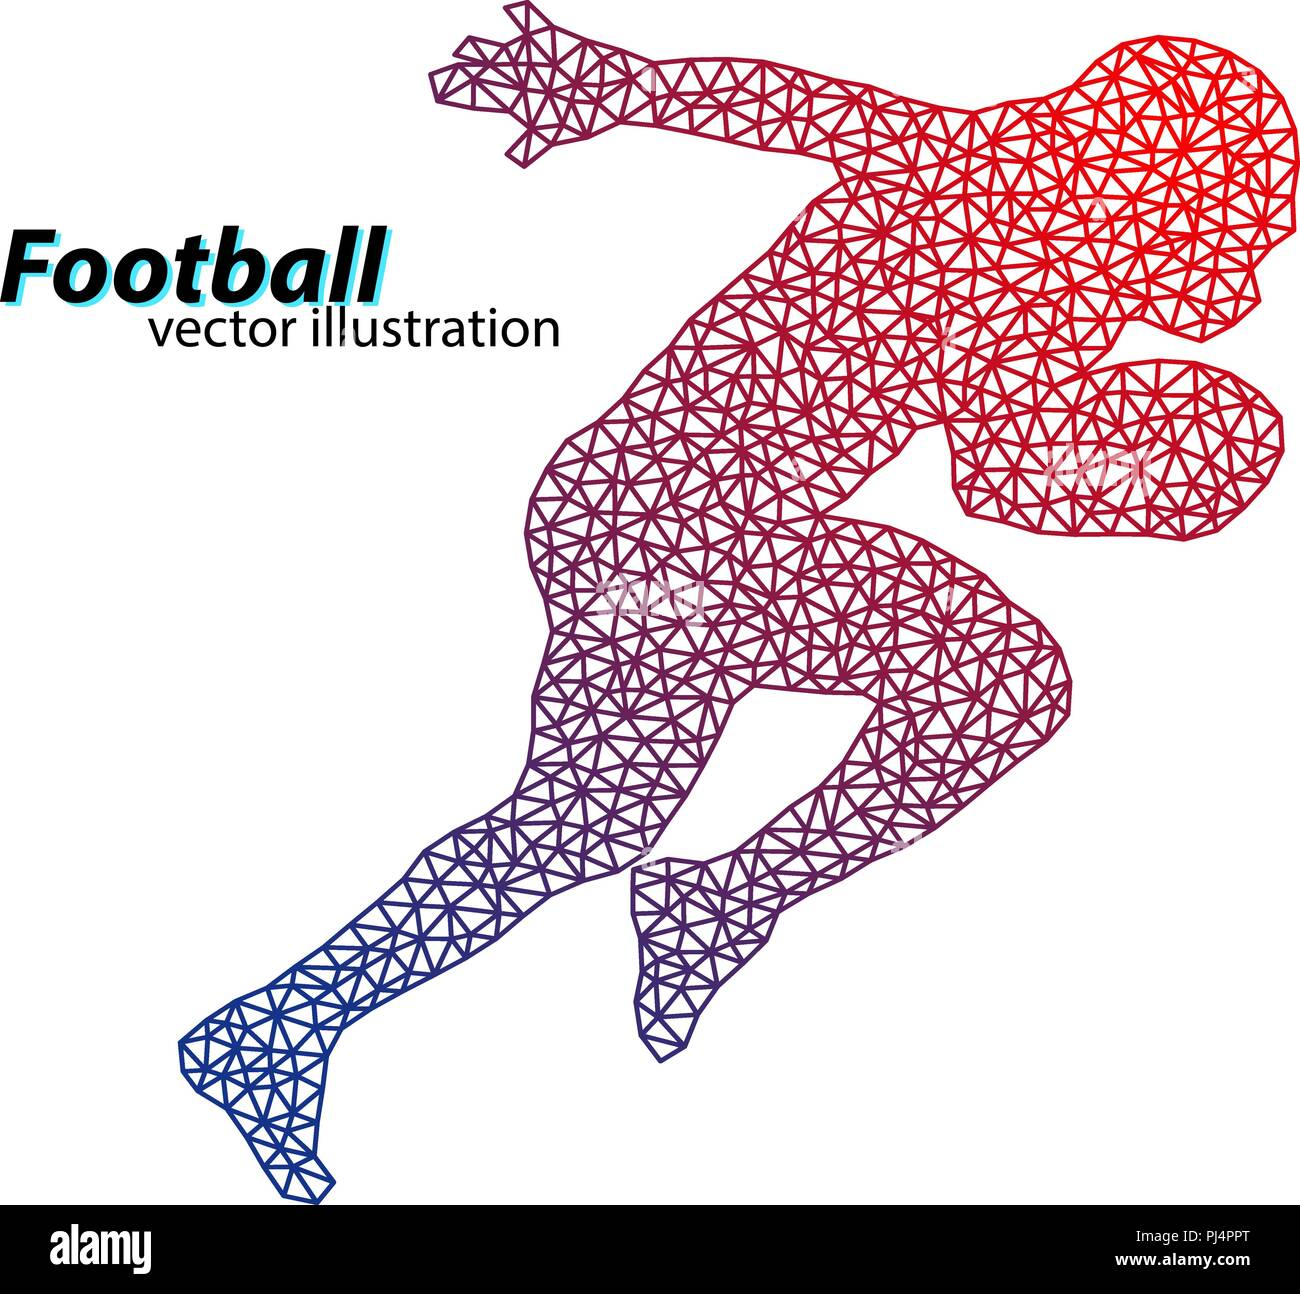 silhouette of a football player from triangle. Background and text on a separate layer, color can be changed in one click. Rugby. American football - Stock Image